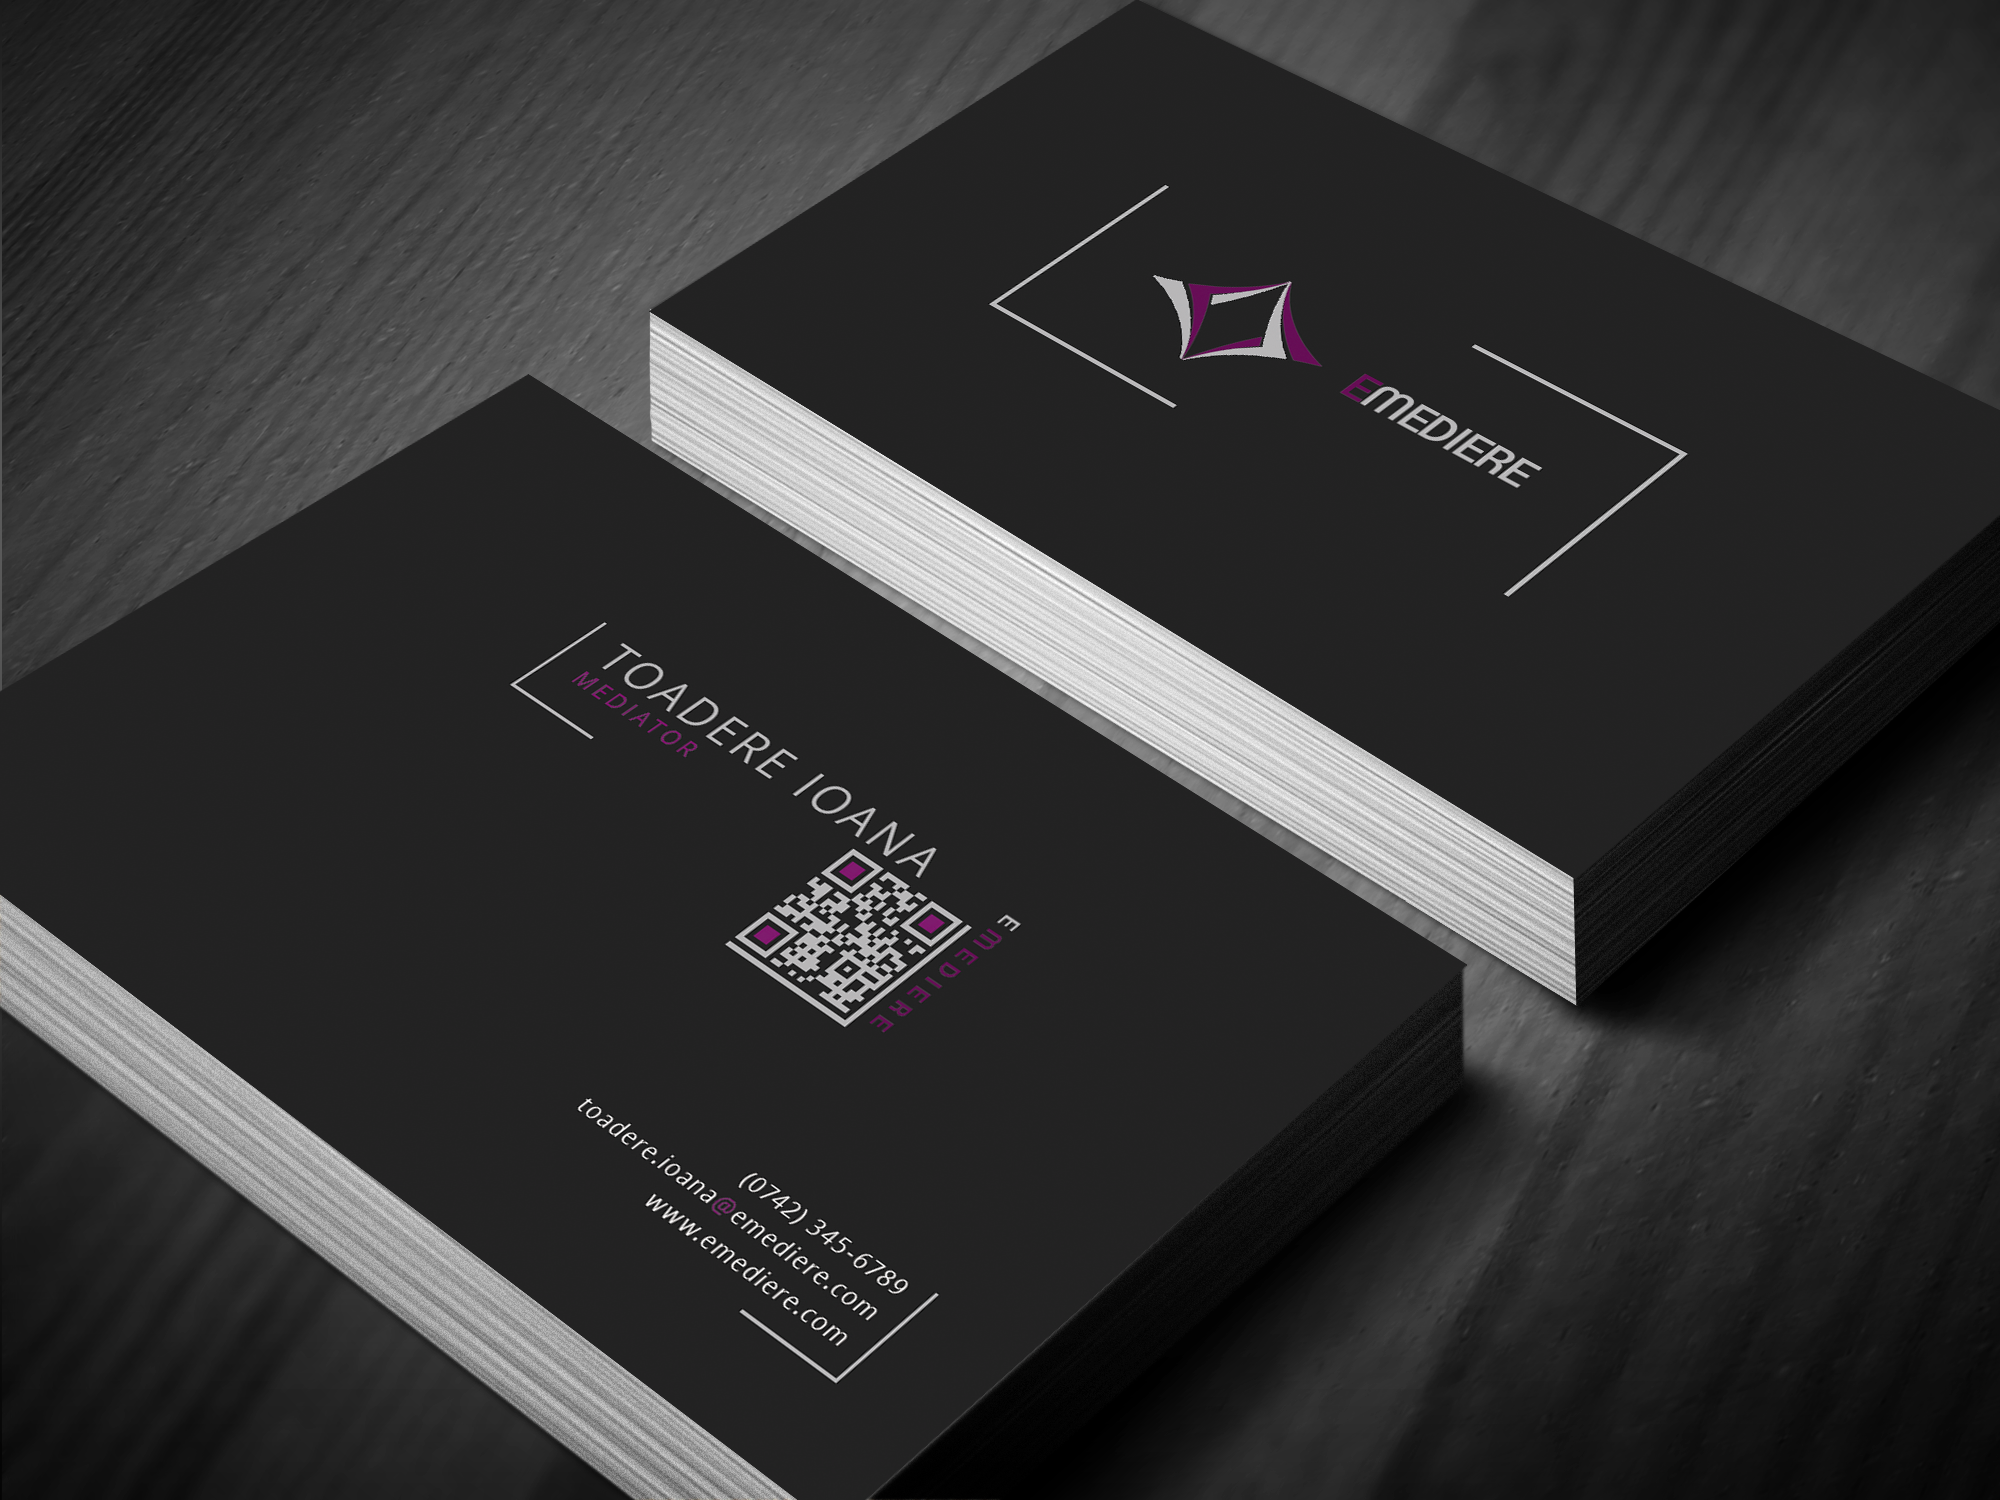 Emediere lawyers business cards print pinterest business cards if you are truly a cool lawyer youll need a cool business card like one of these magicingreecefo Image collections